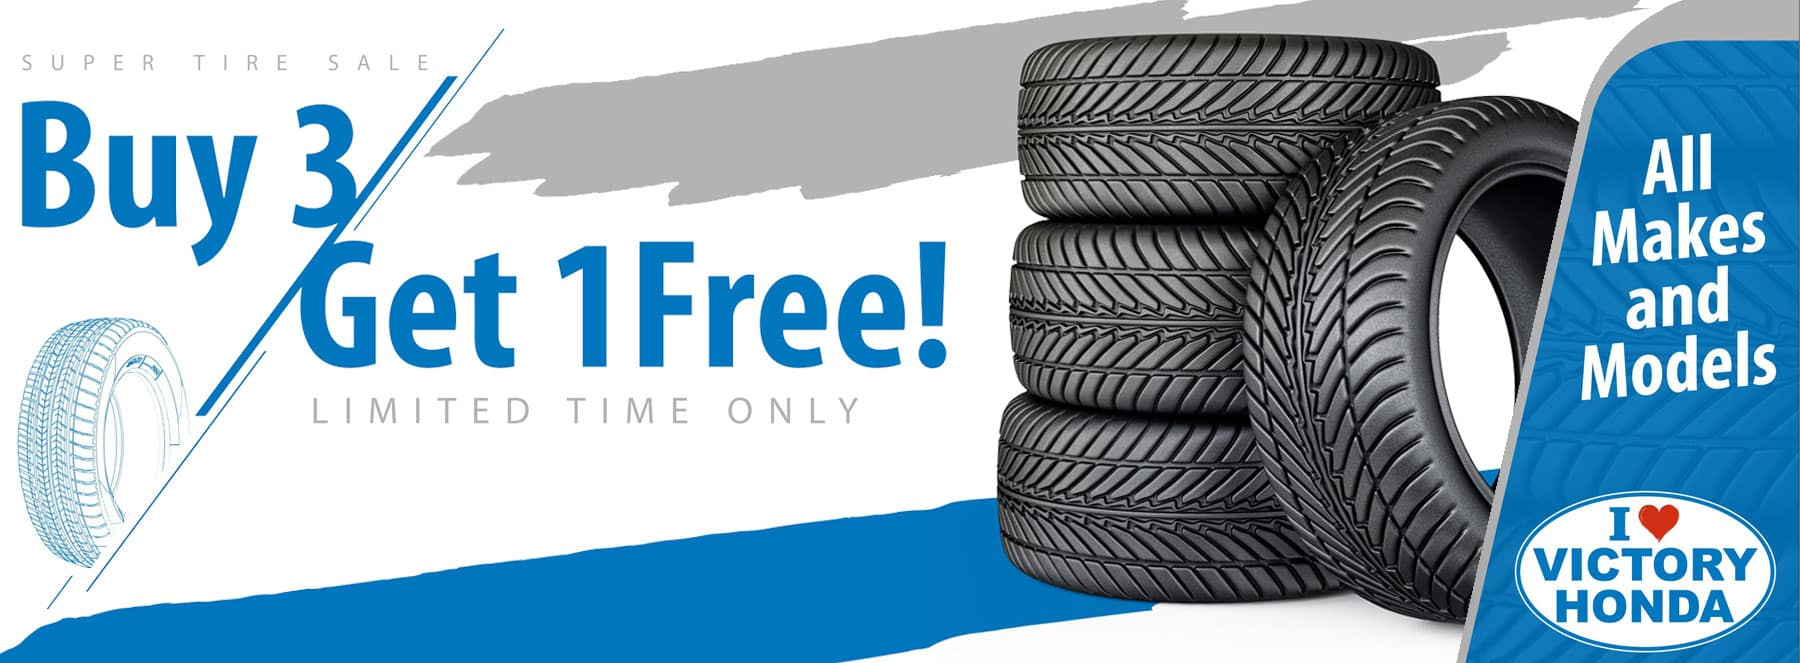 Super tire sale buy 3 get 1 free